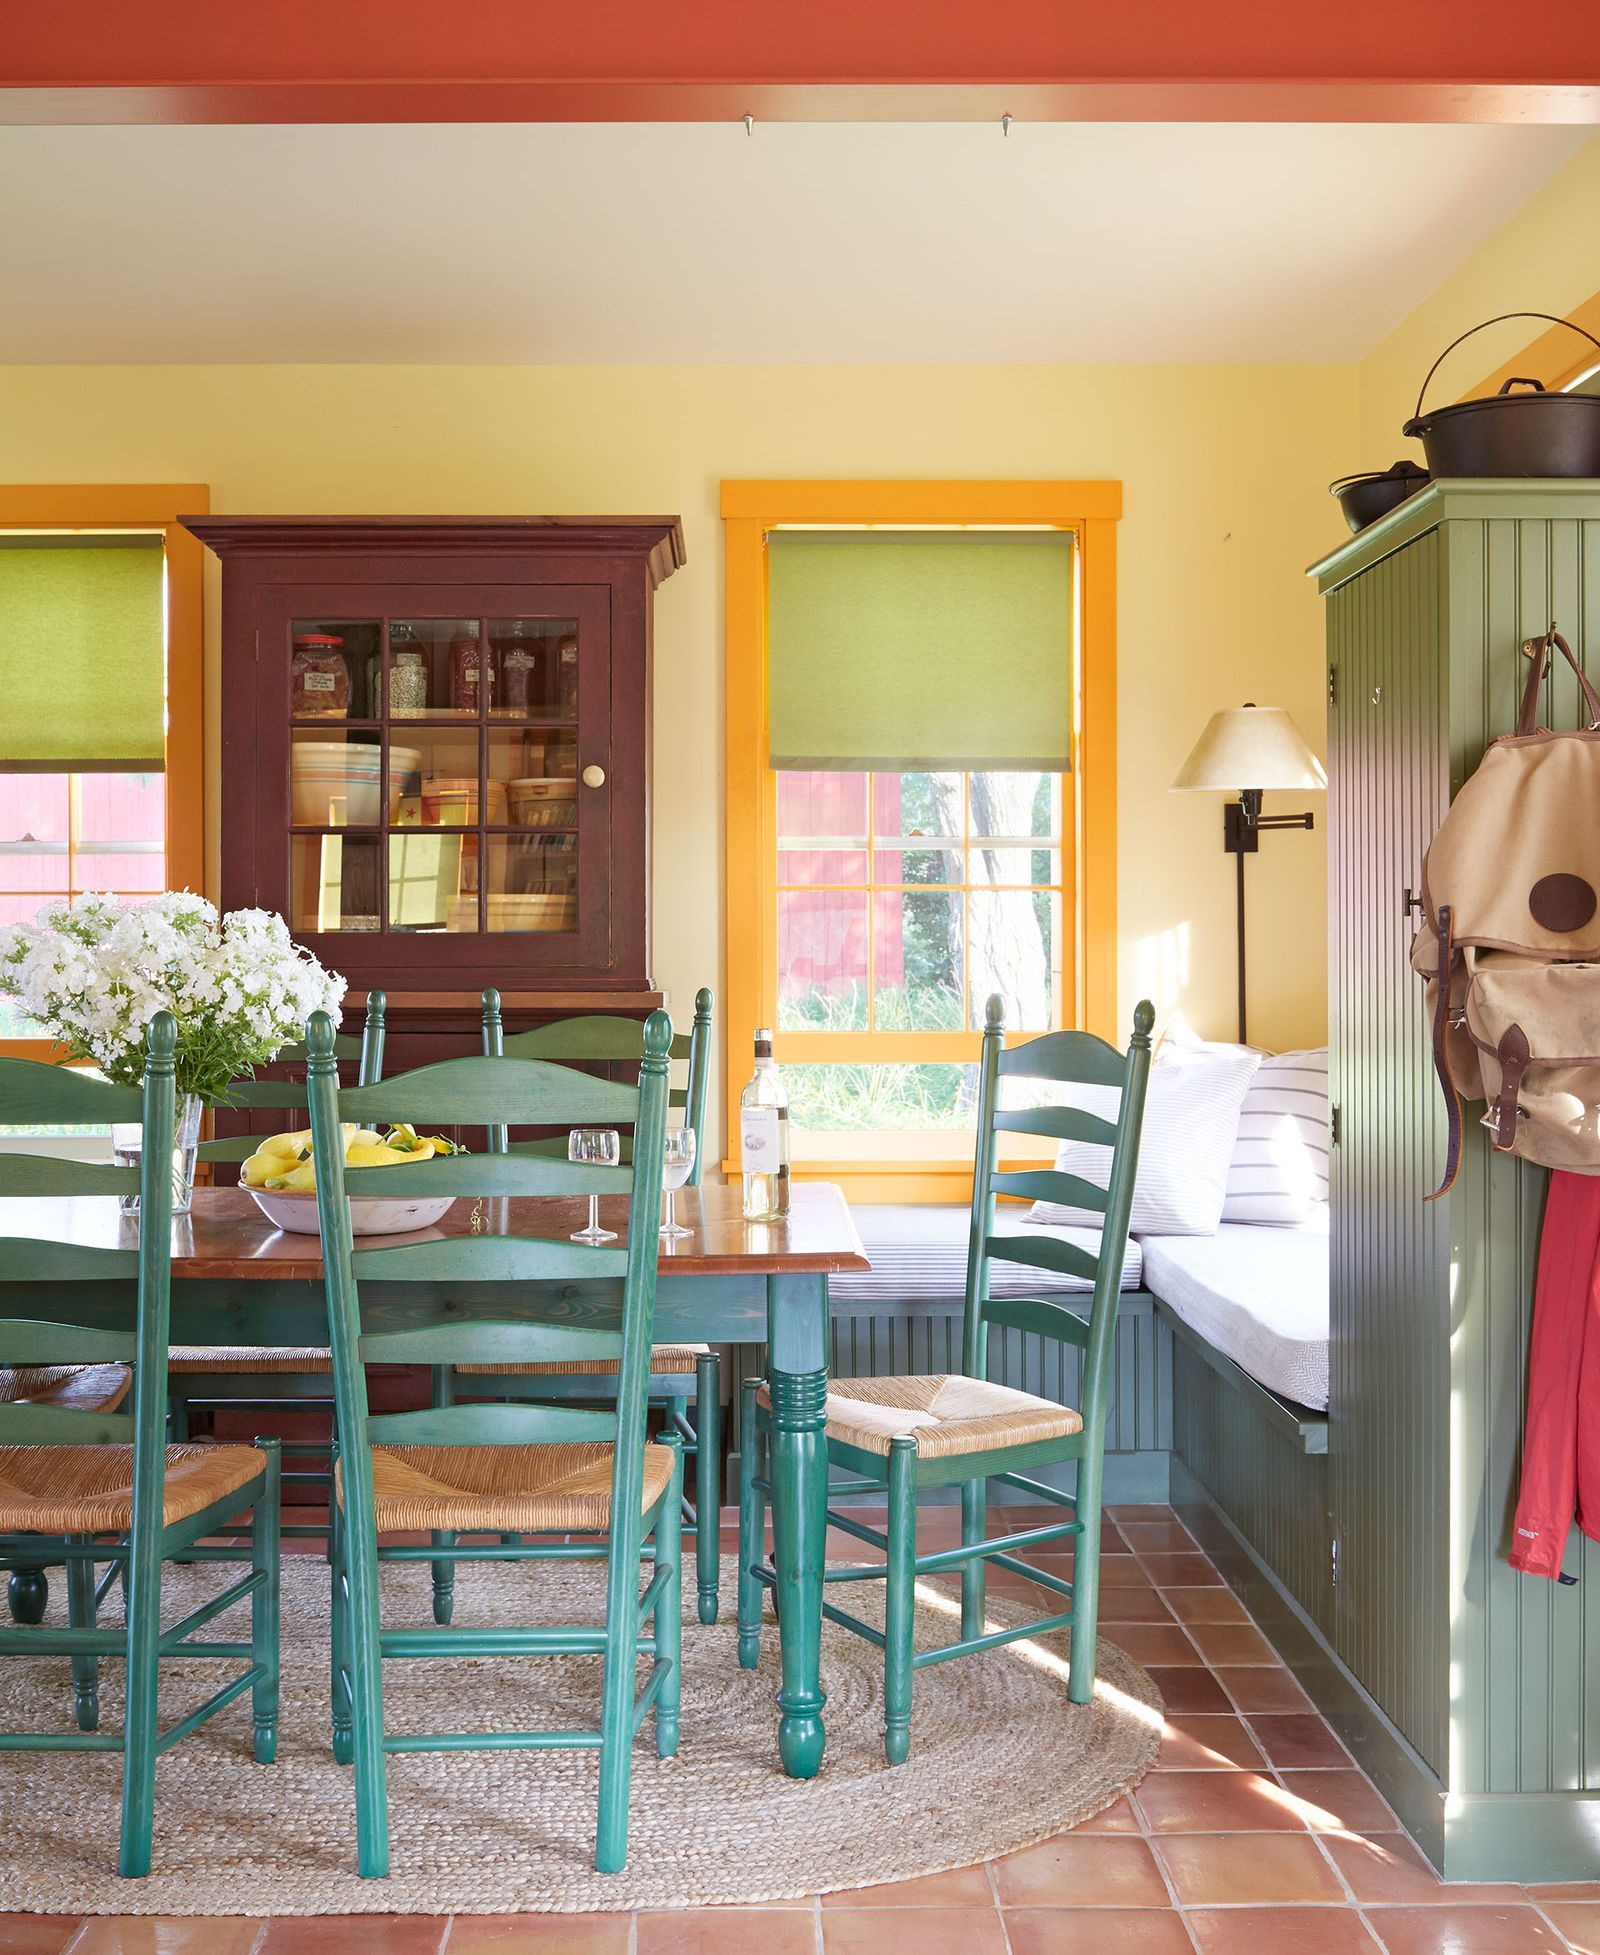 85 Inspired Ideas for Dining Room Decorating | Dining, Room and Room ...